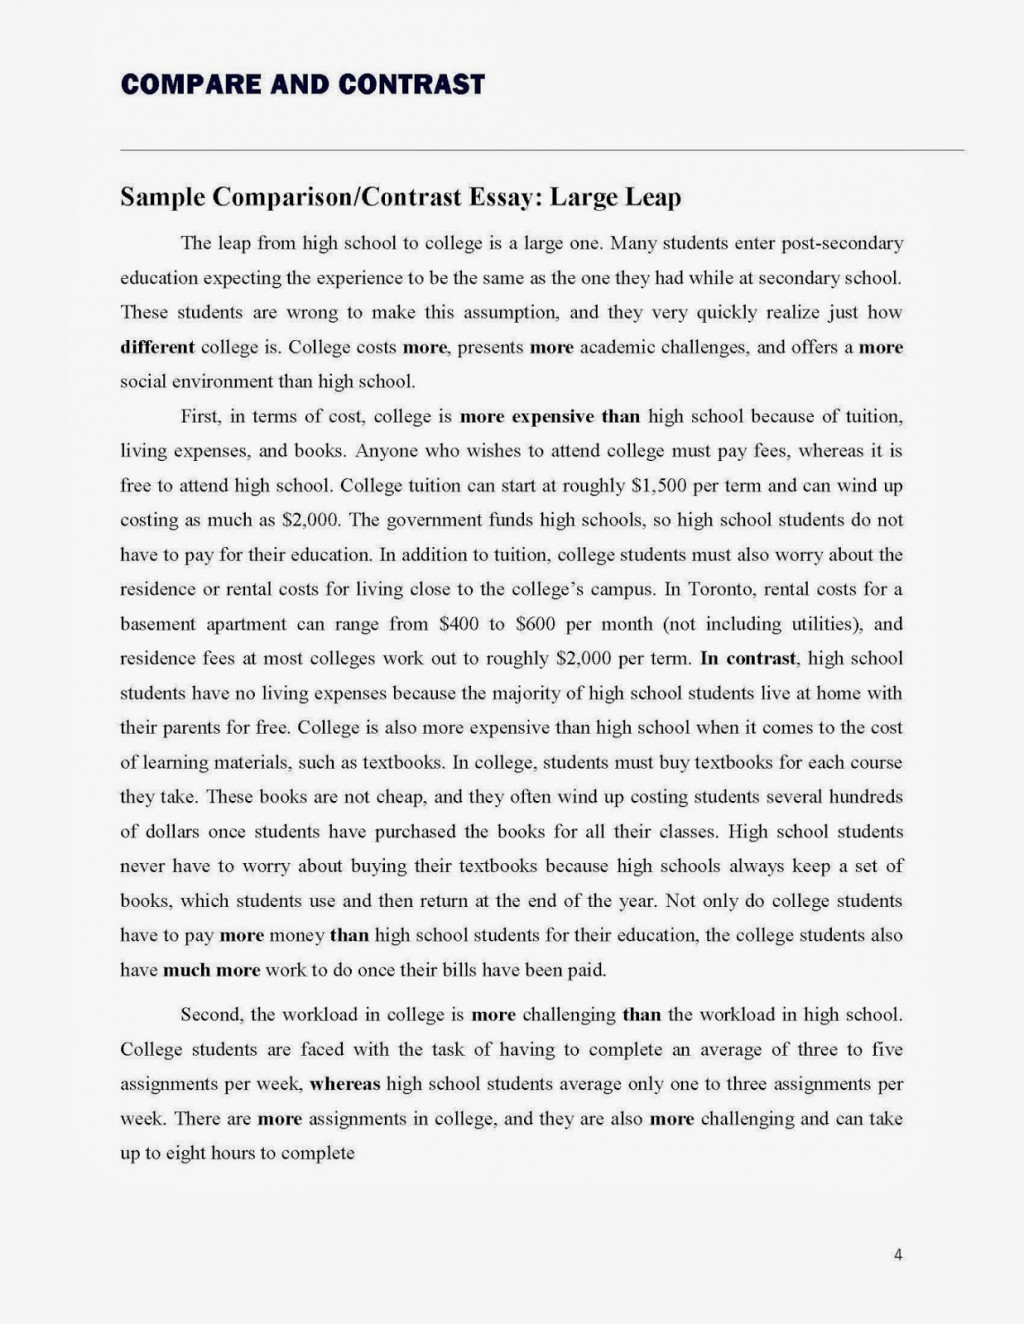 009 Compare20and20contrast20essay Page 4 Topics For Compare And Contrast Essay Amazing Essays Middle School Fun Large